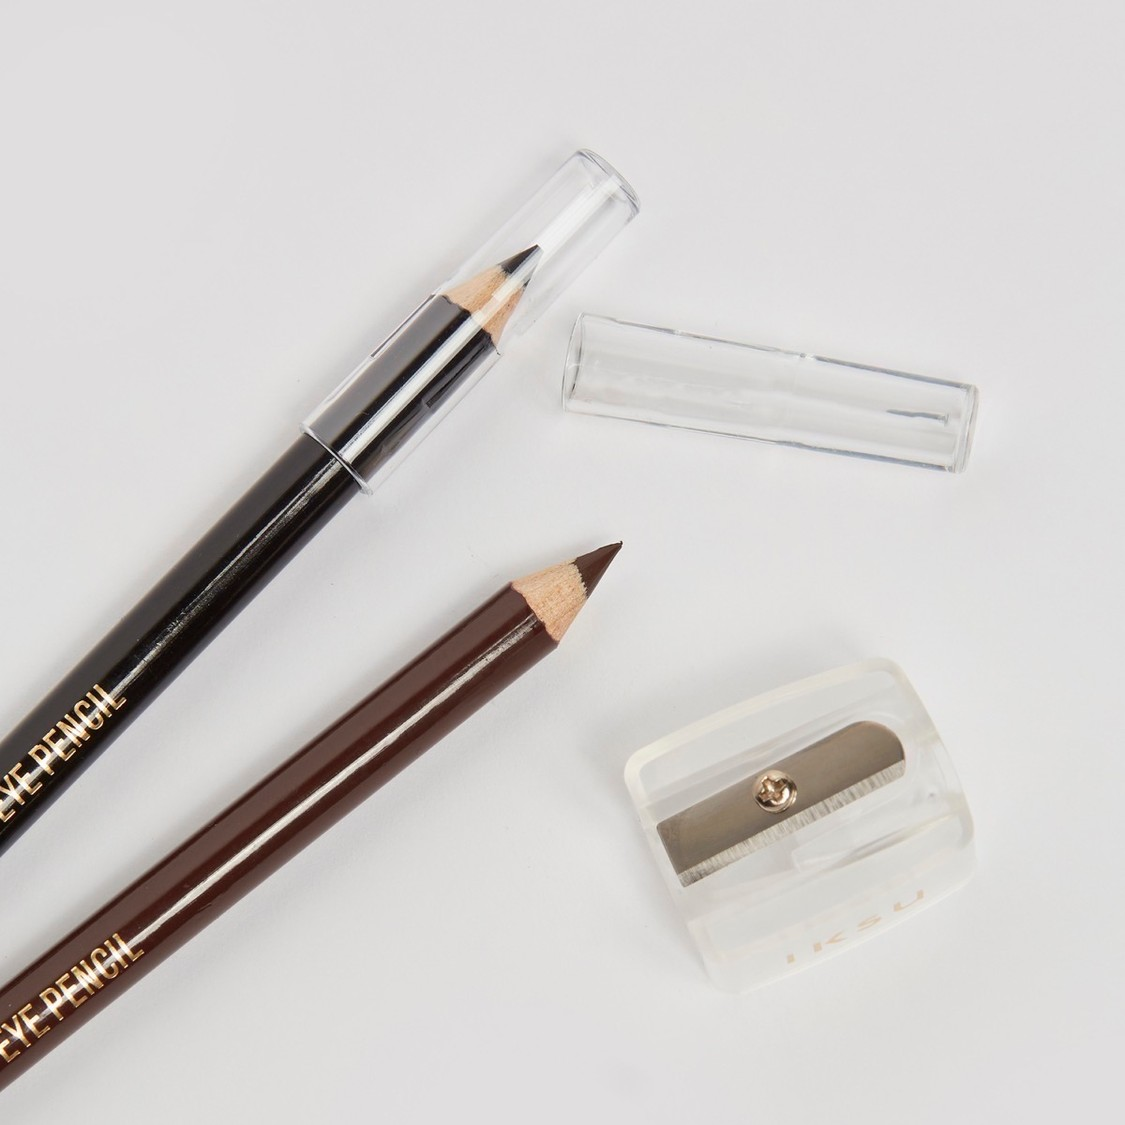 IKSU Duo 3-Piece Eye Make-up Set